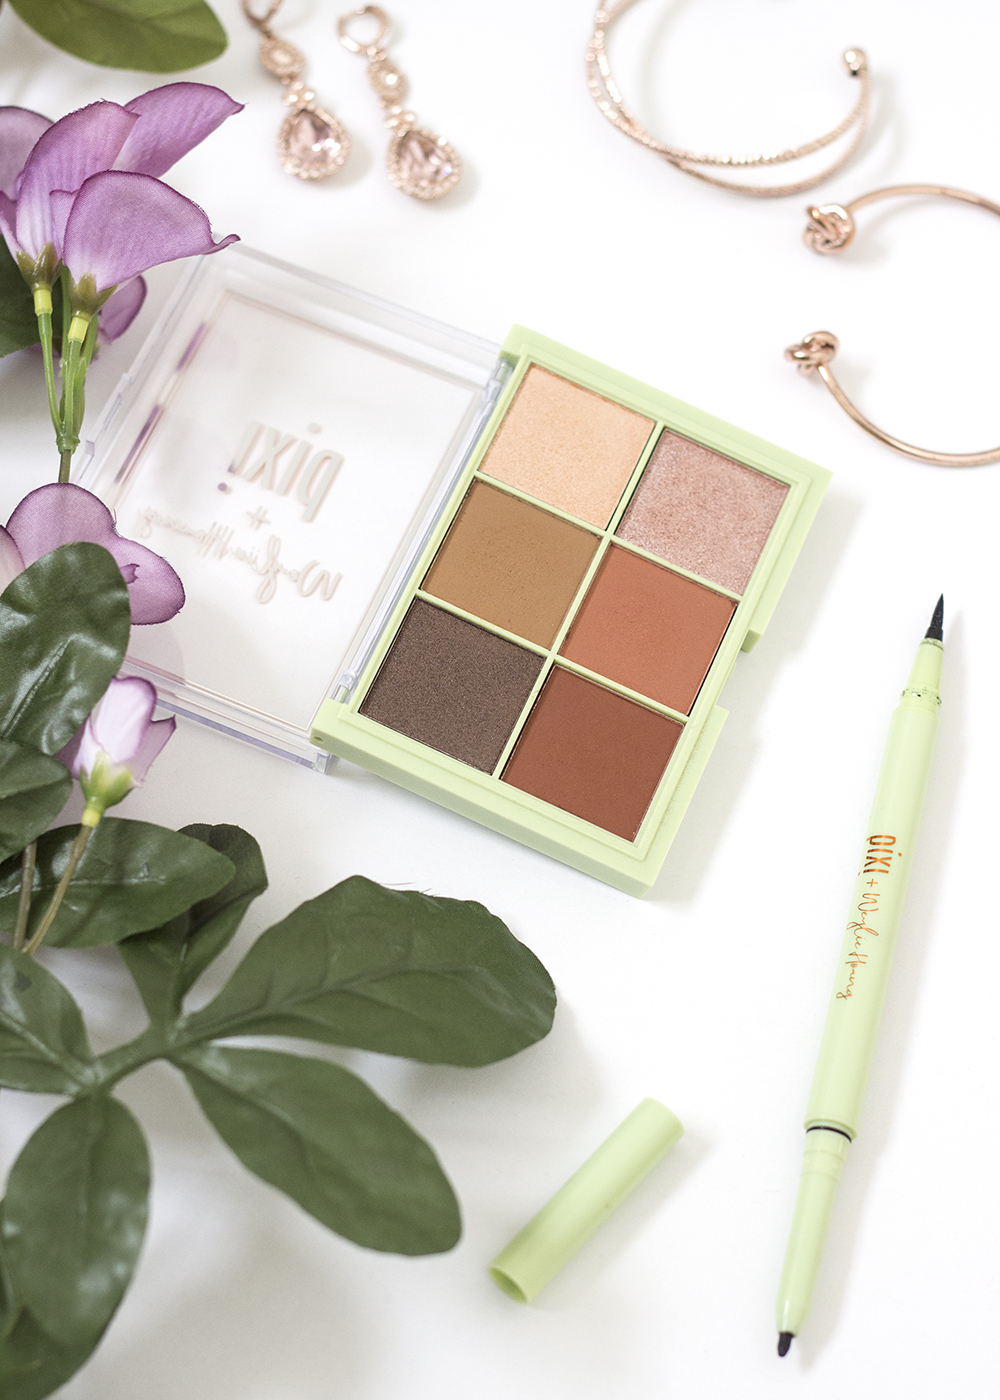 Pixi Beauty Dimensional Eye Creator Kit